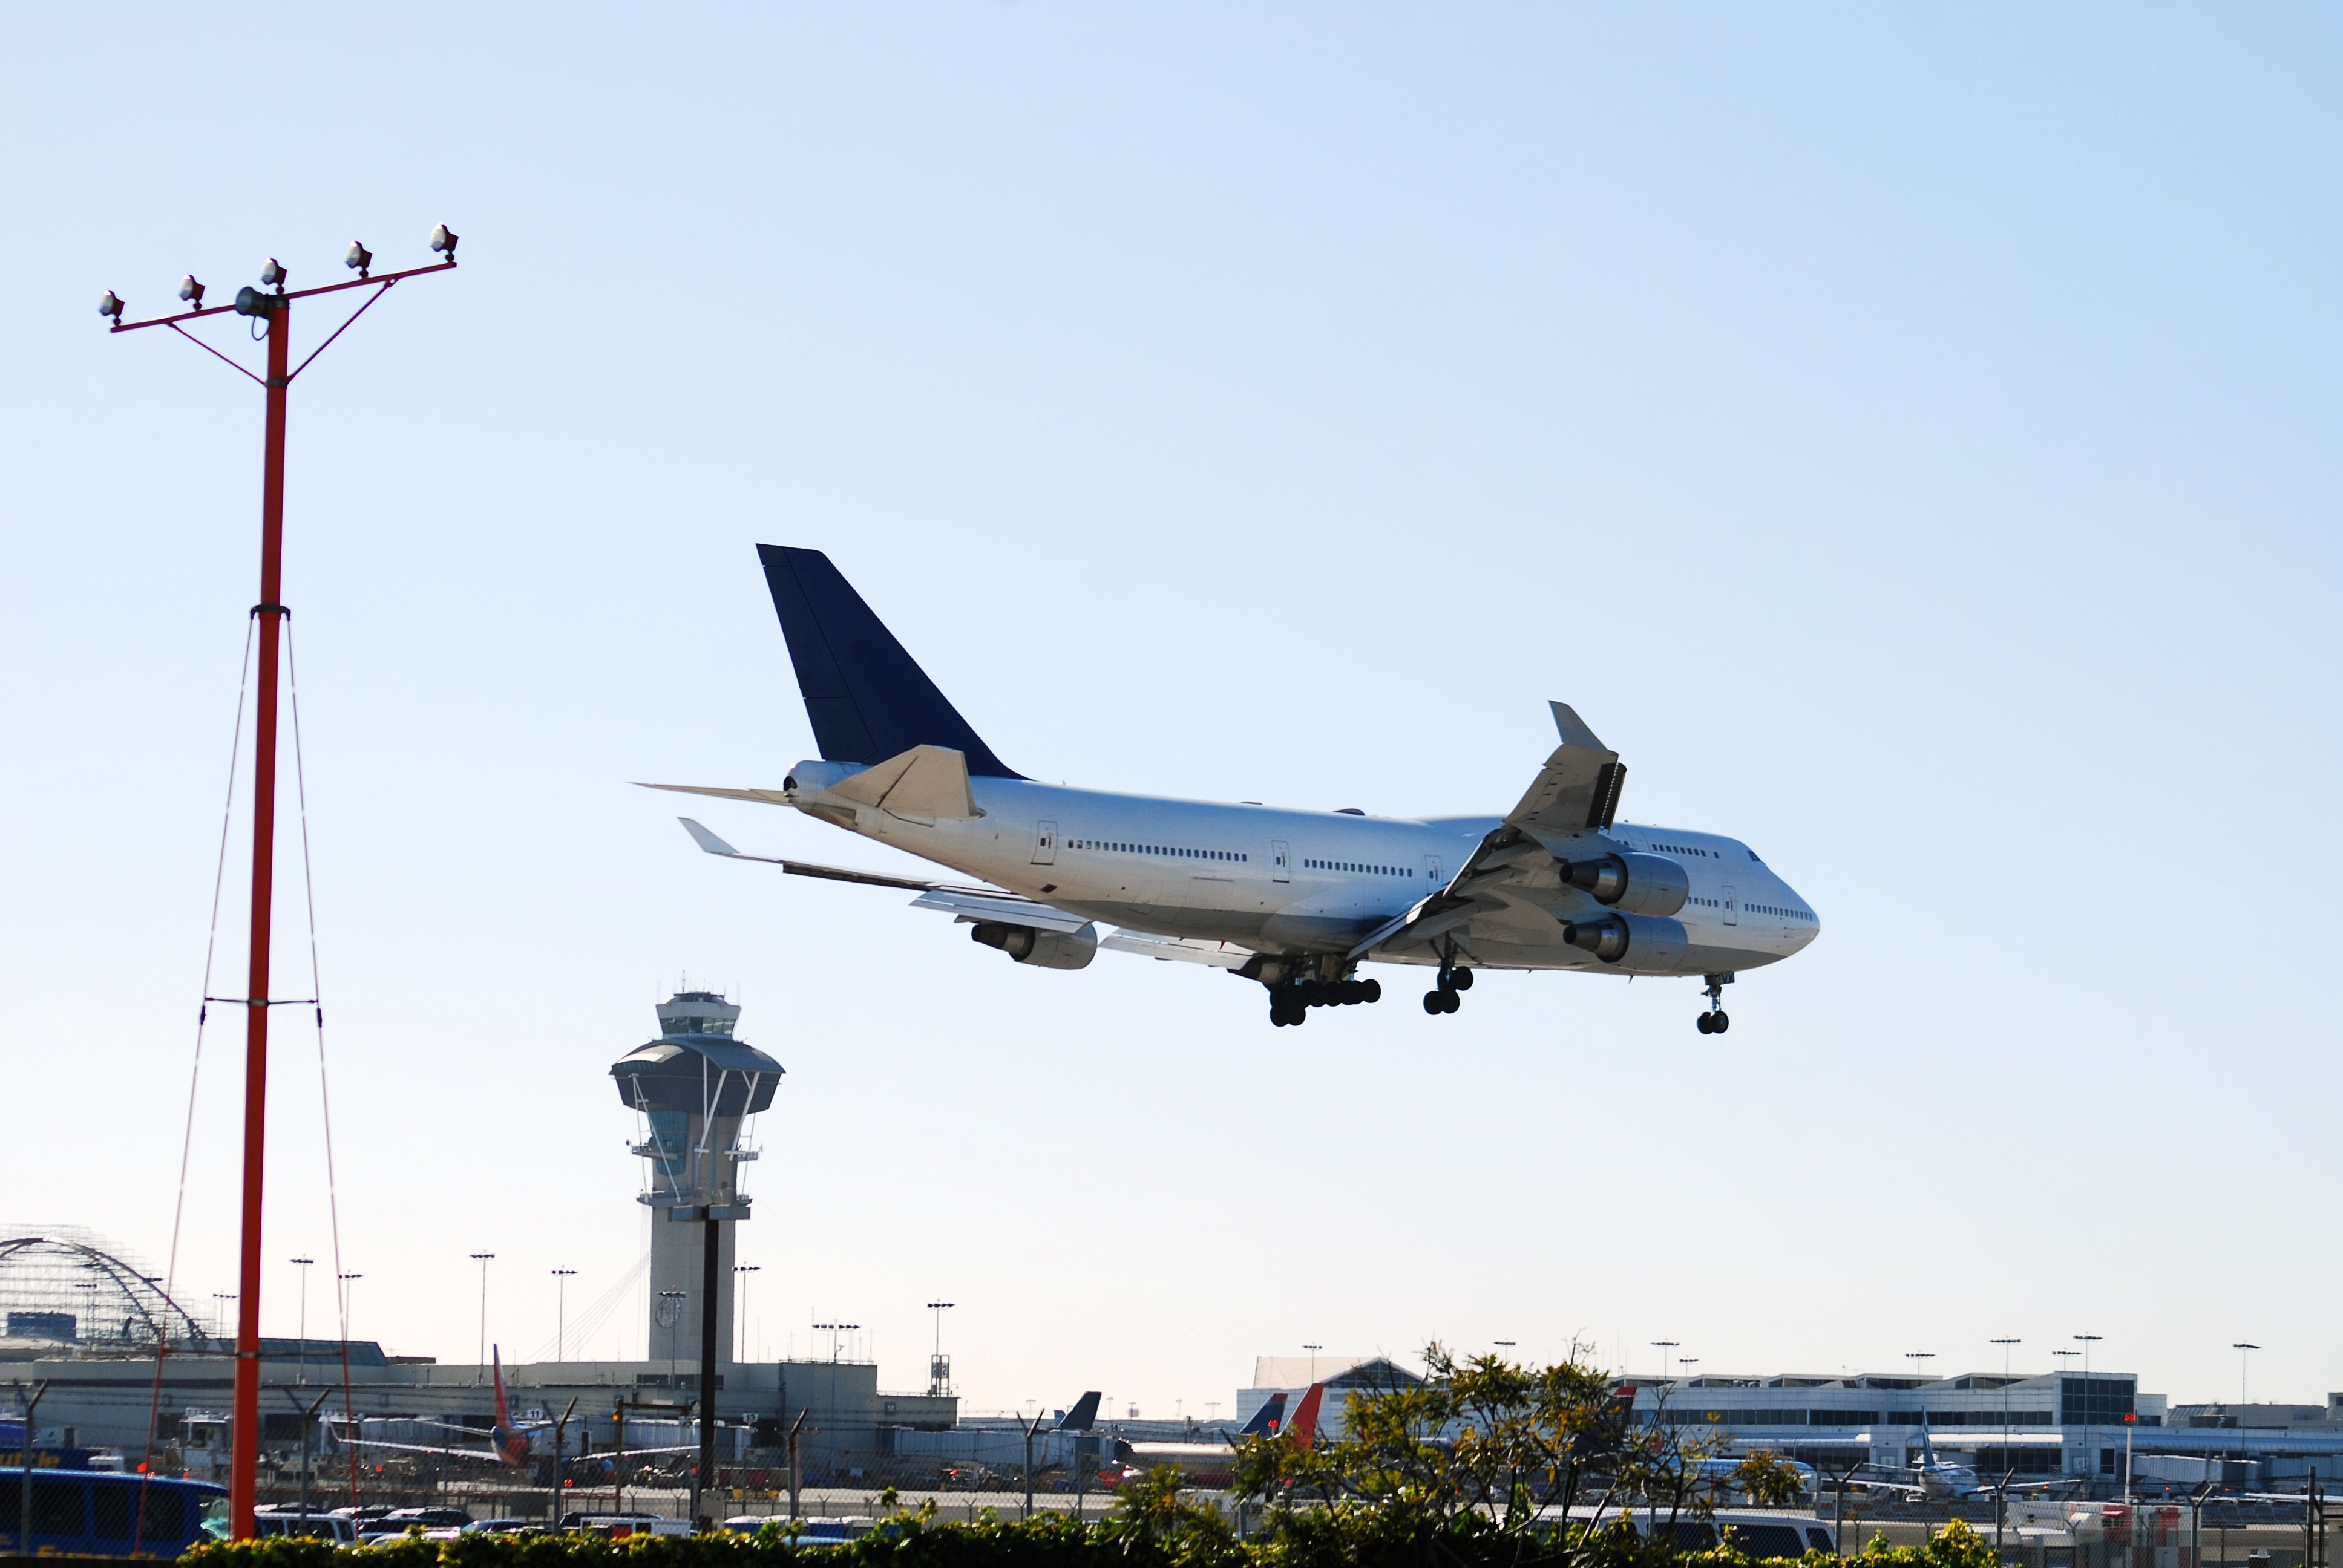 Blog_-_DASI_-_Control_Tower_and_Airplane2